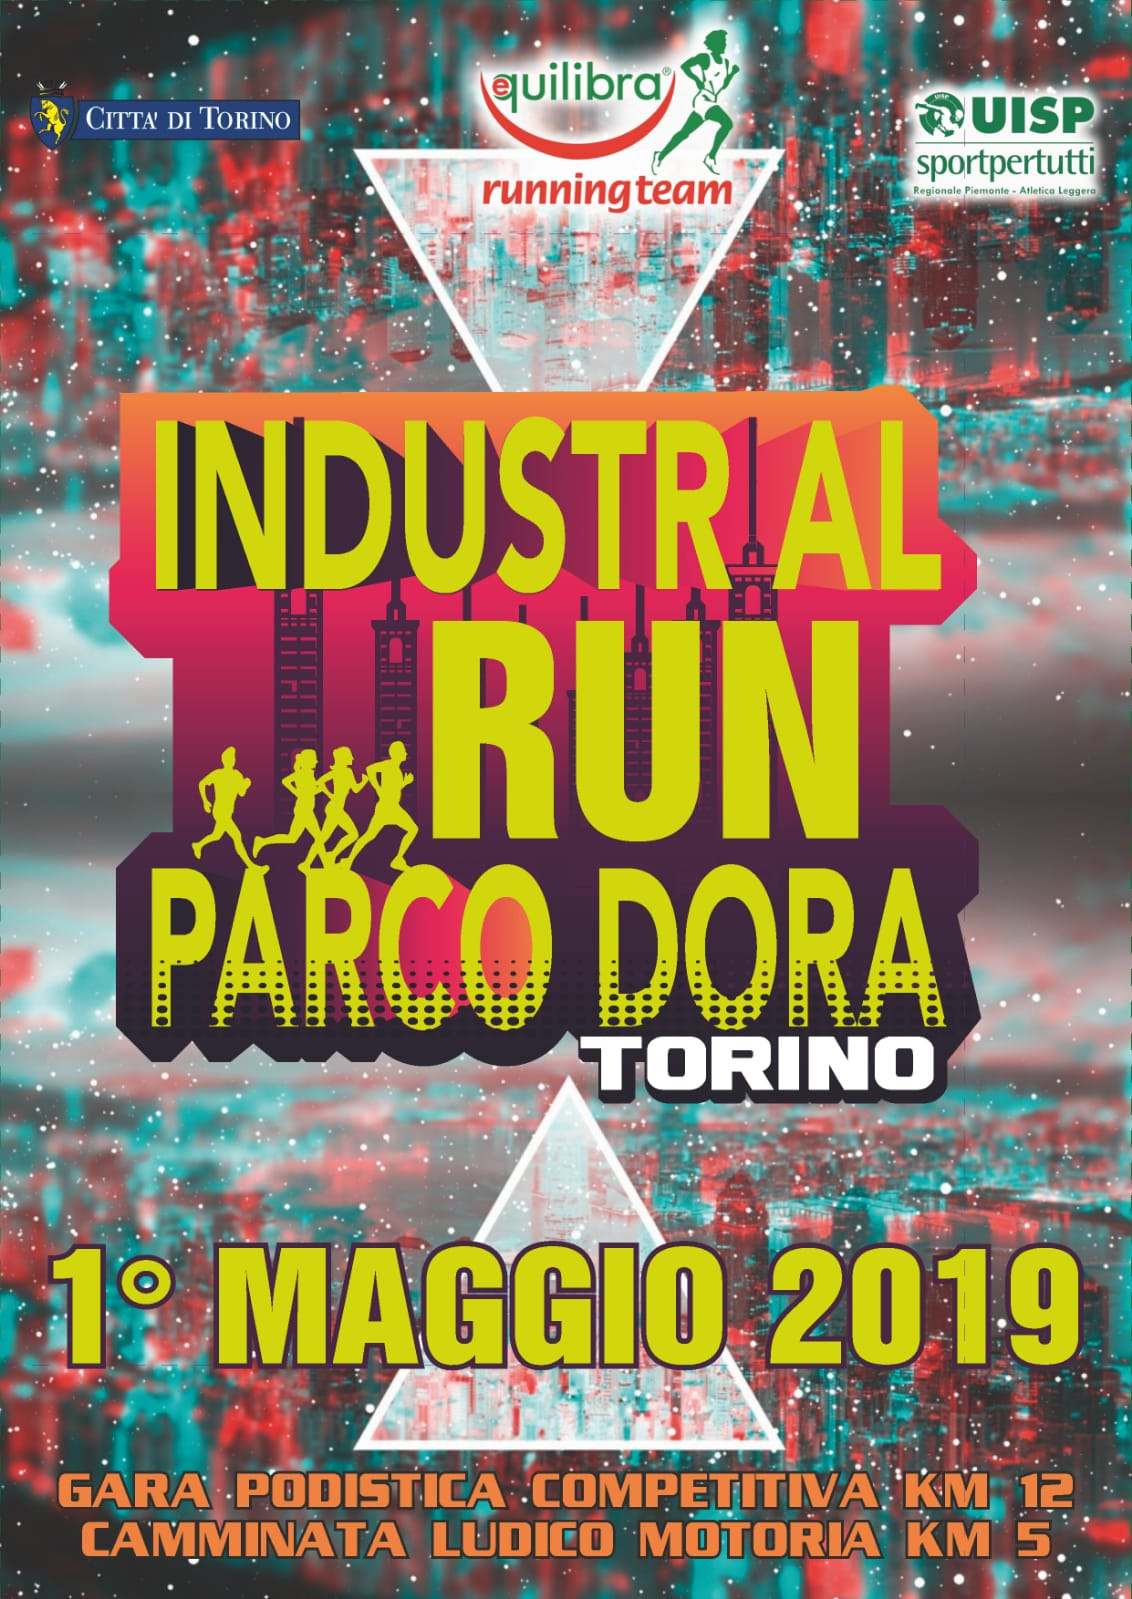 Industrial Run Parco Dora 2019